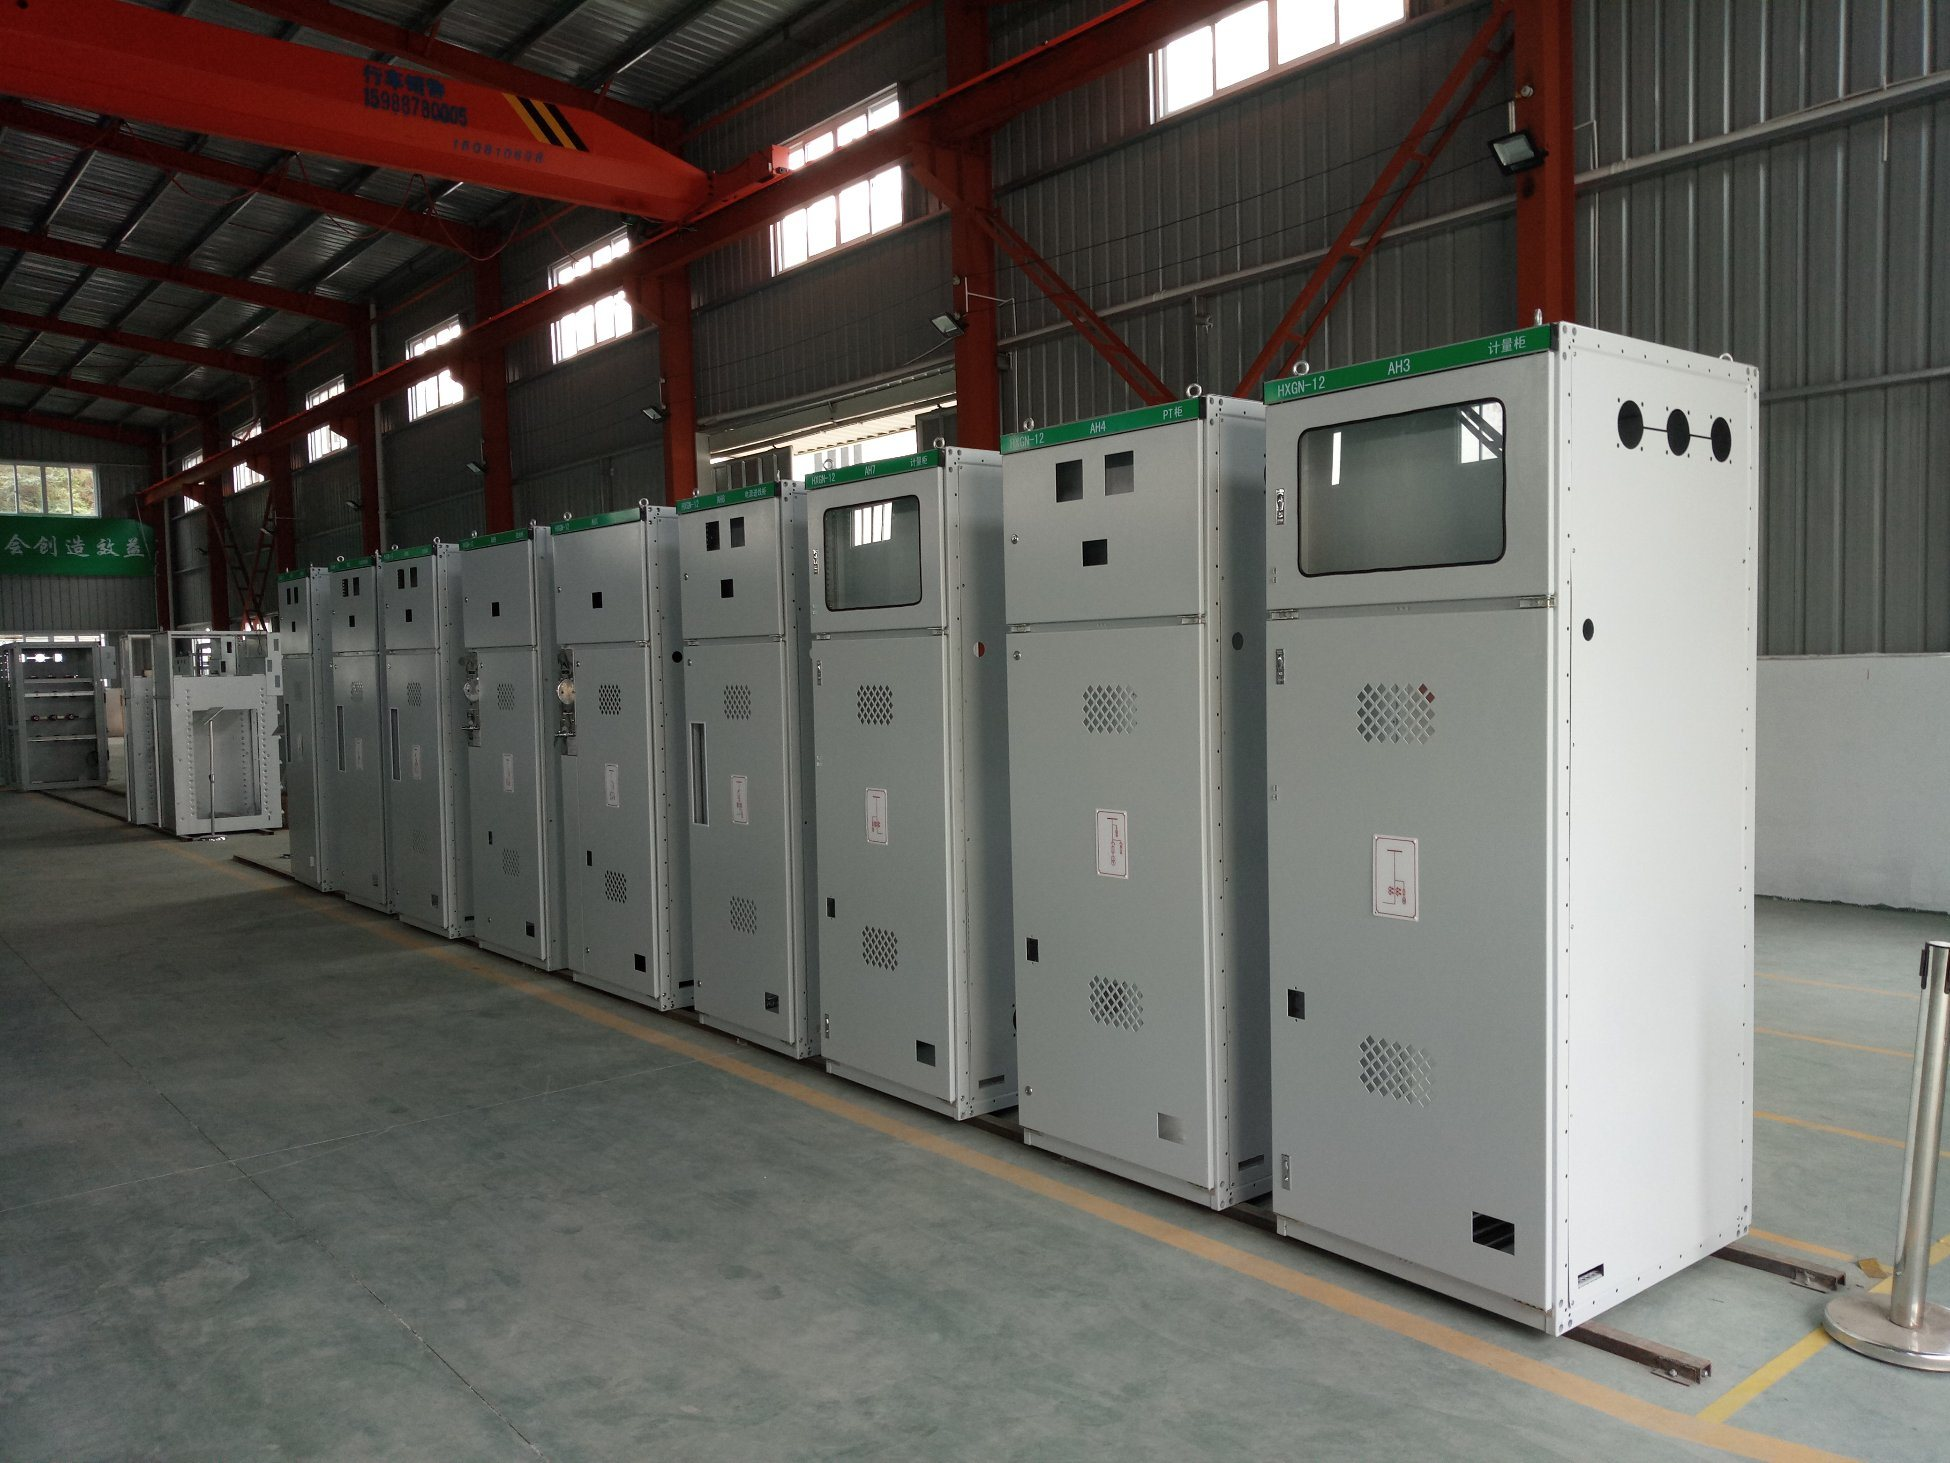 China Hxgn-12 Series High Voltage Electrical Ring Main Units (RMU ...